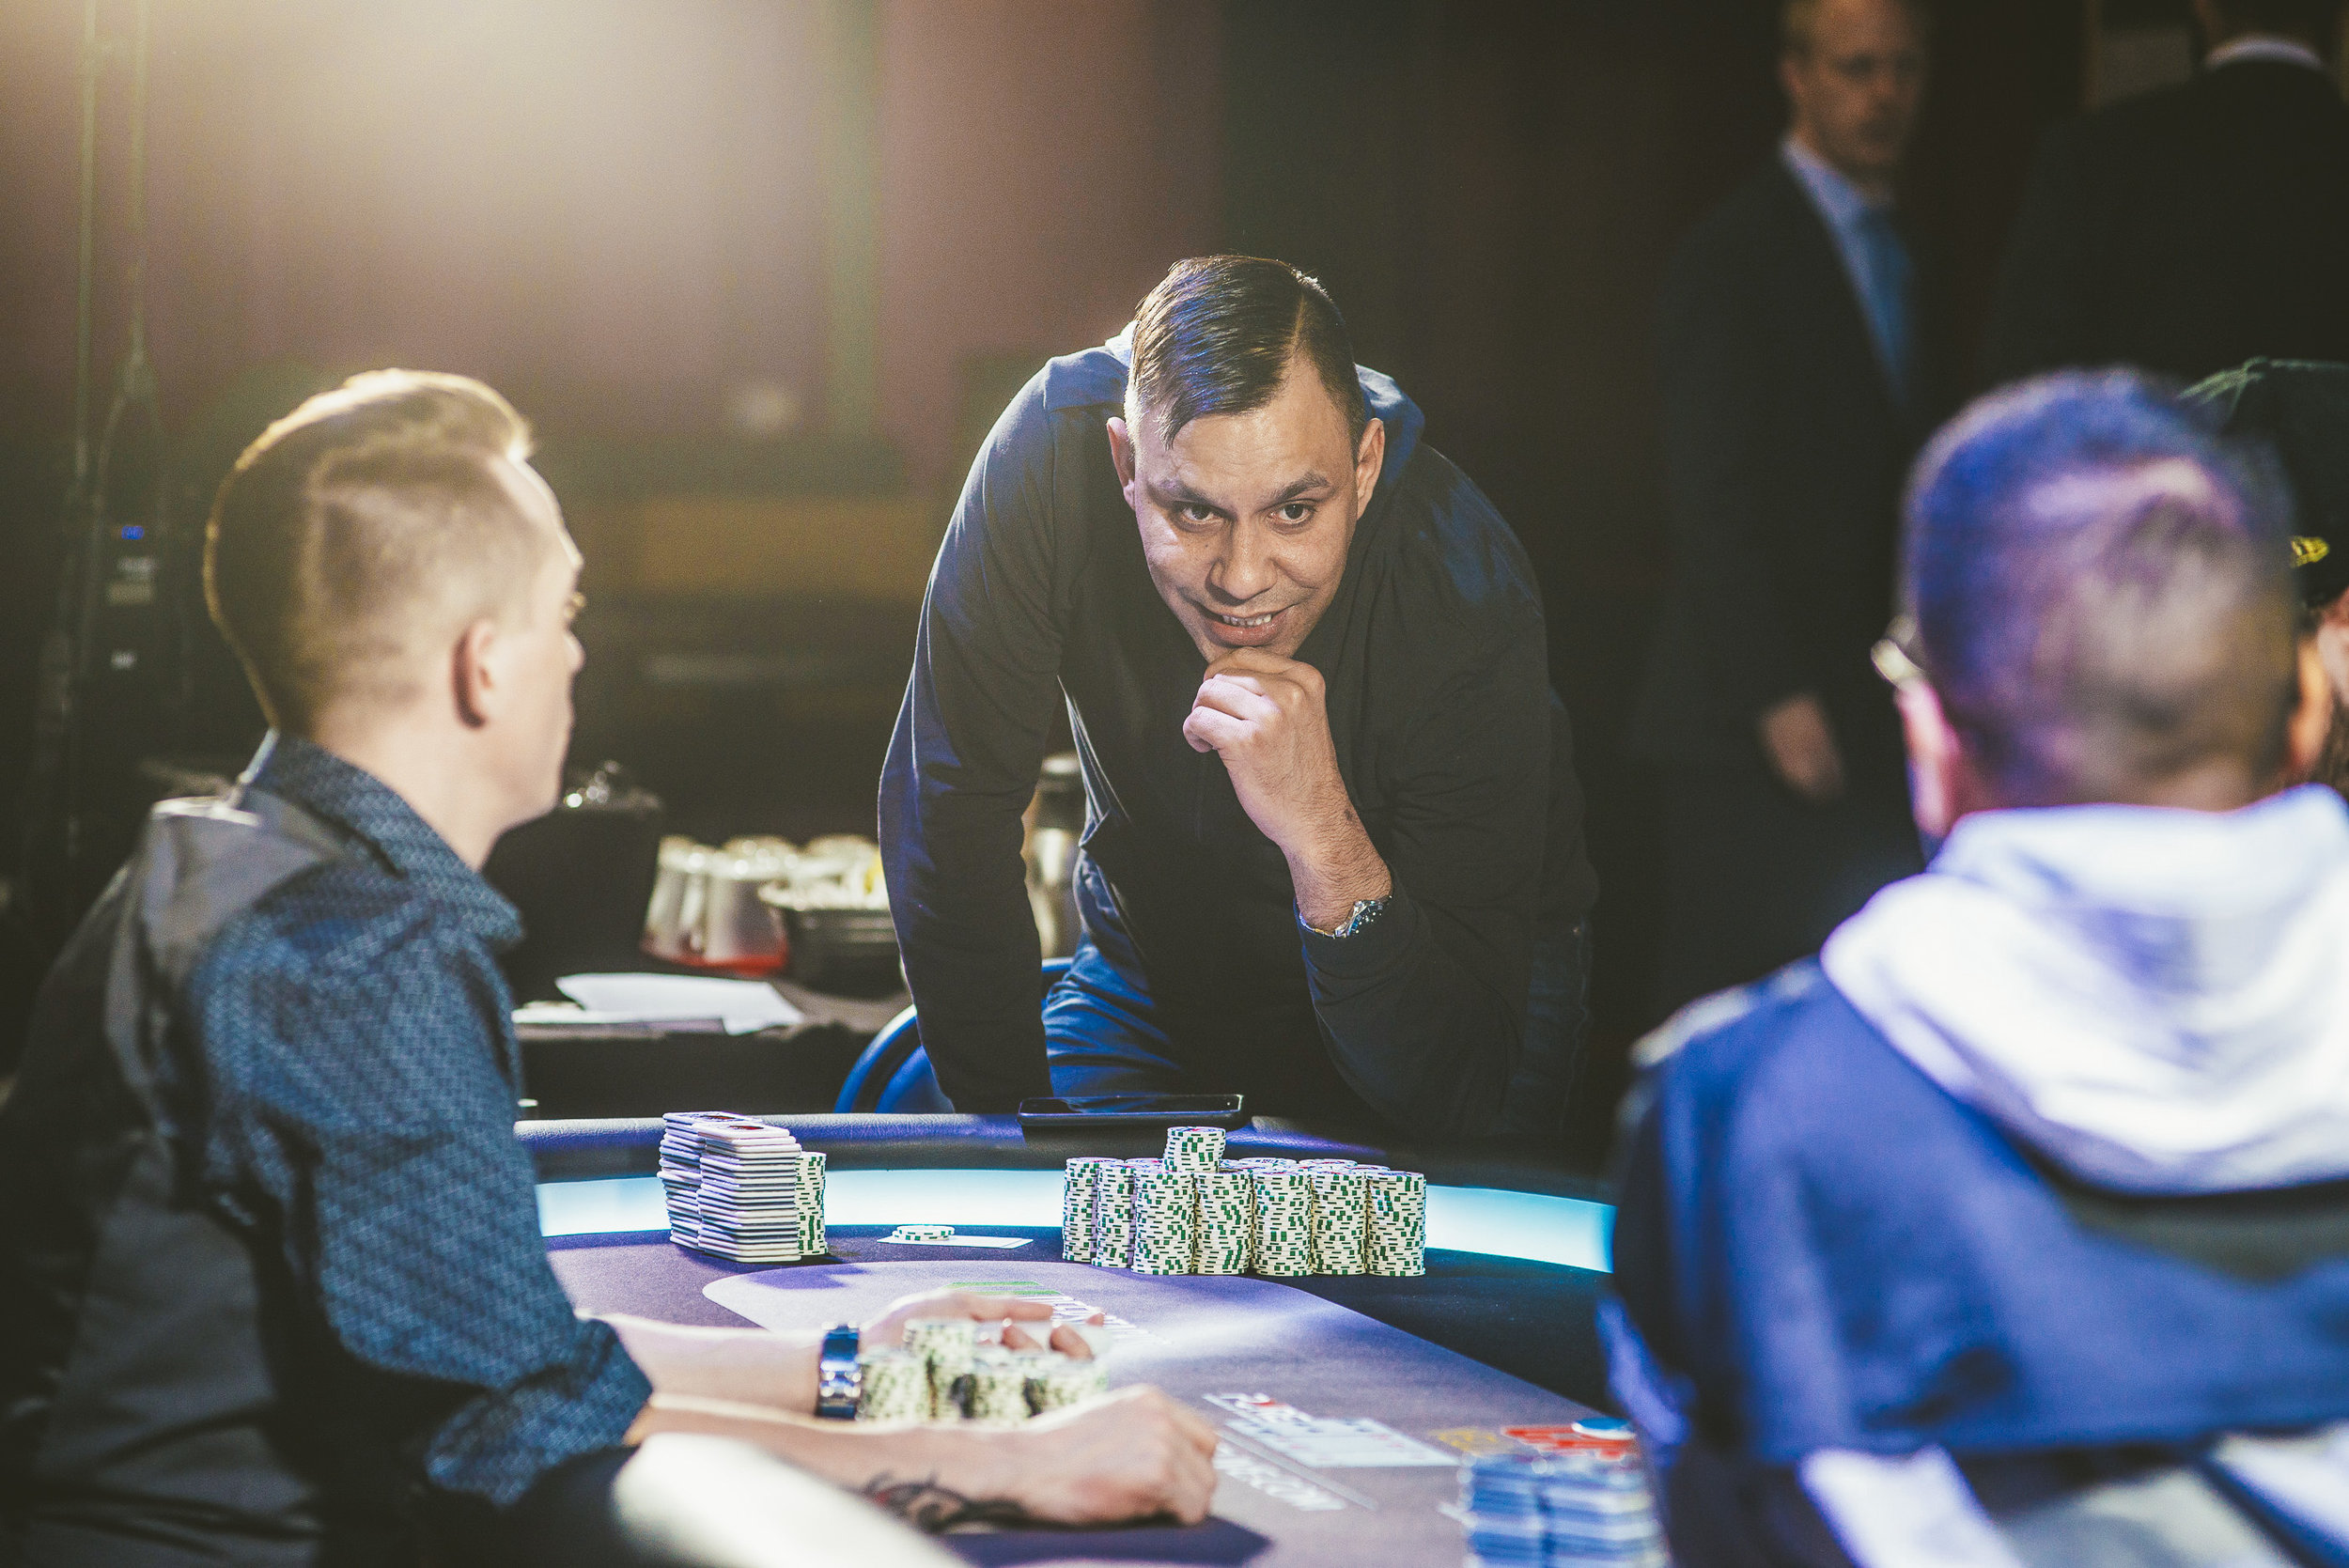 DeepStacks Poker Tour_Paul Brar_Amato_AA42979.jpg